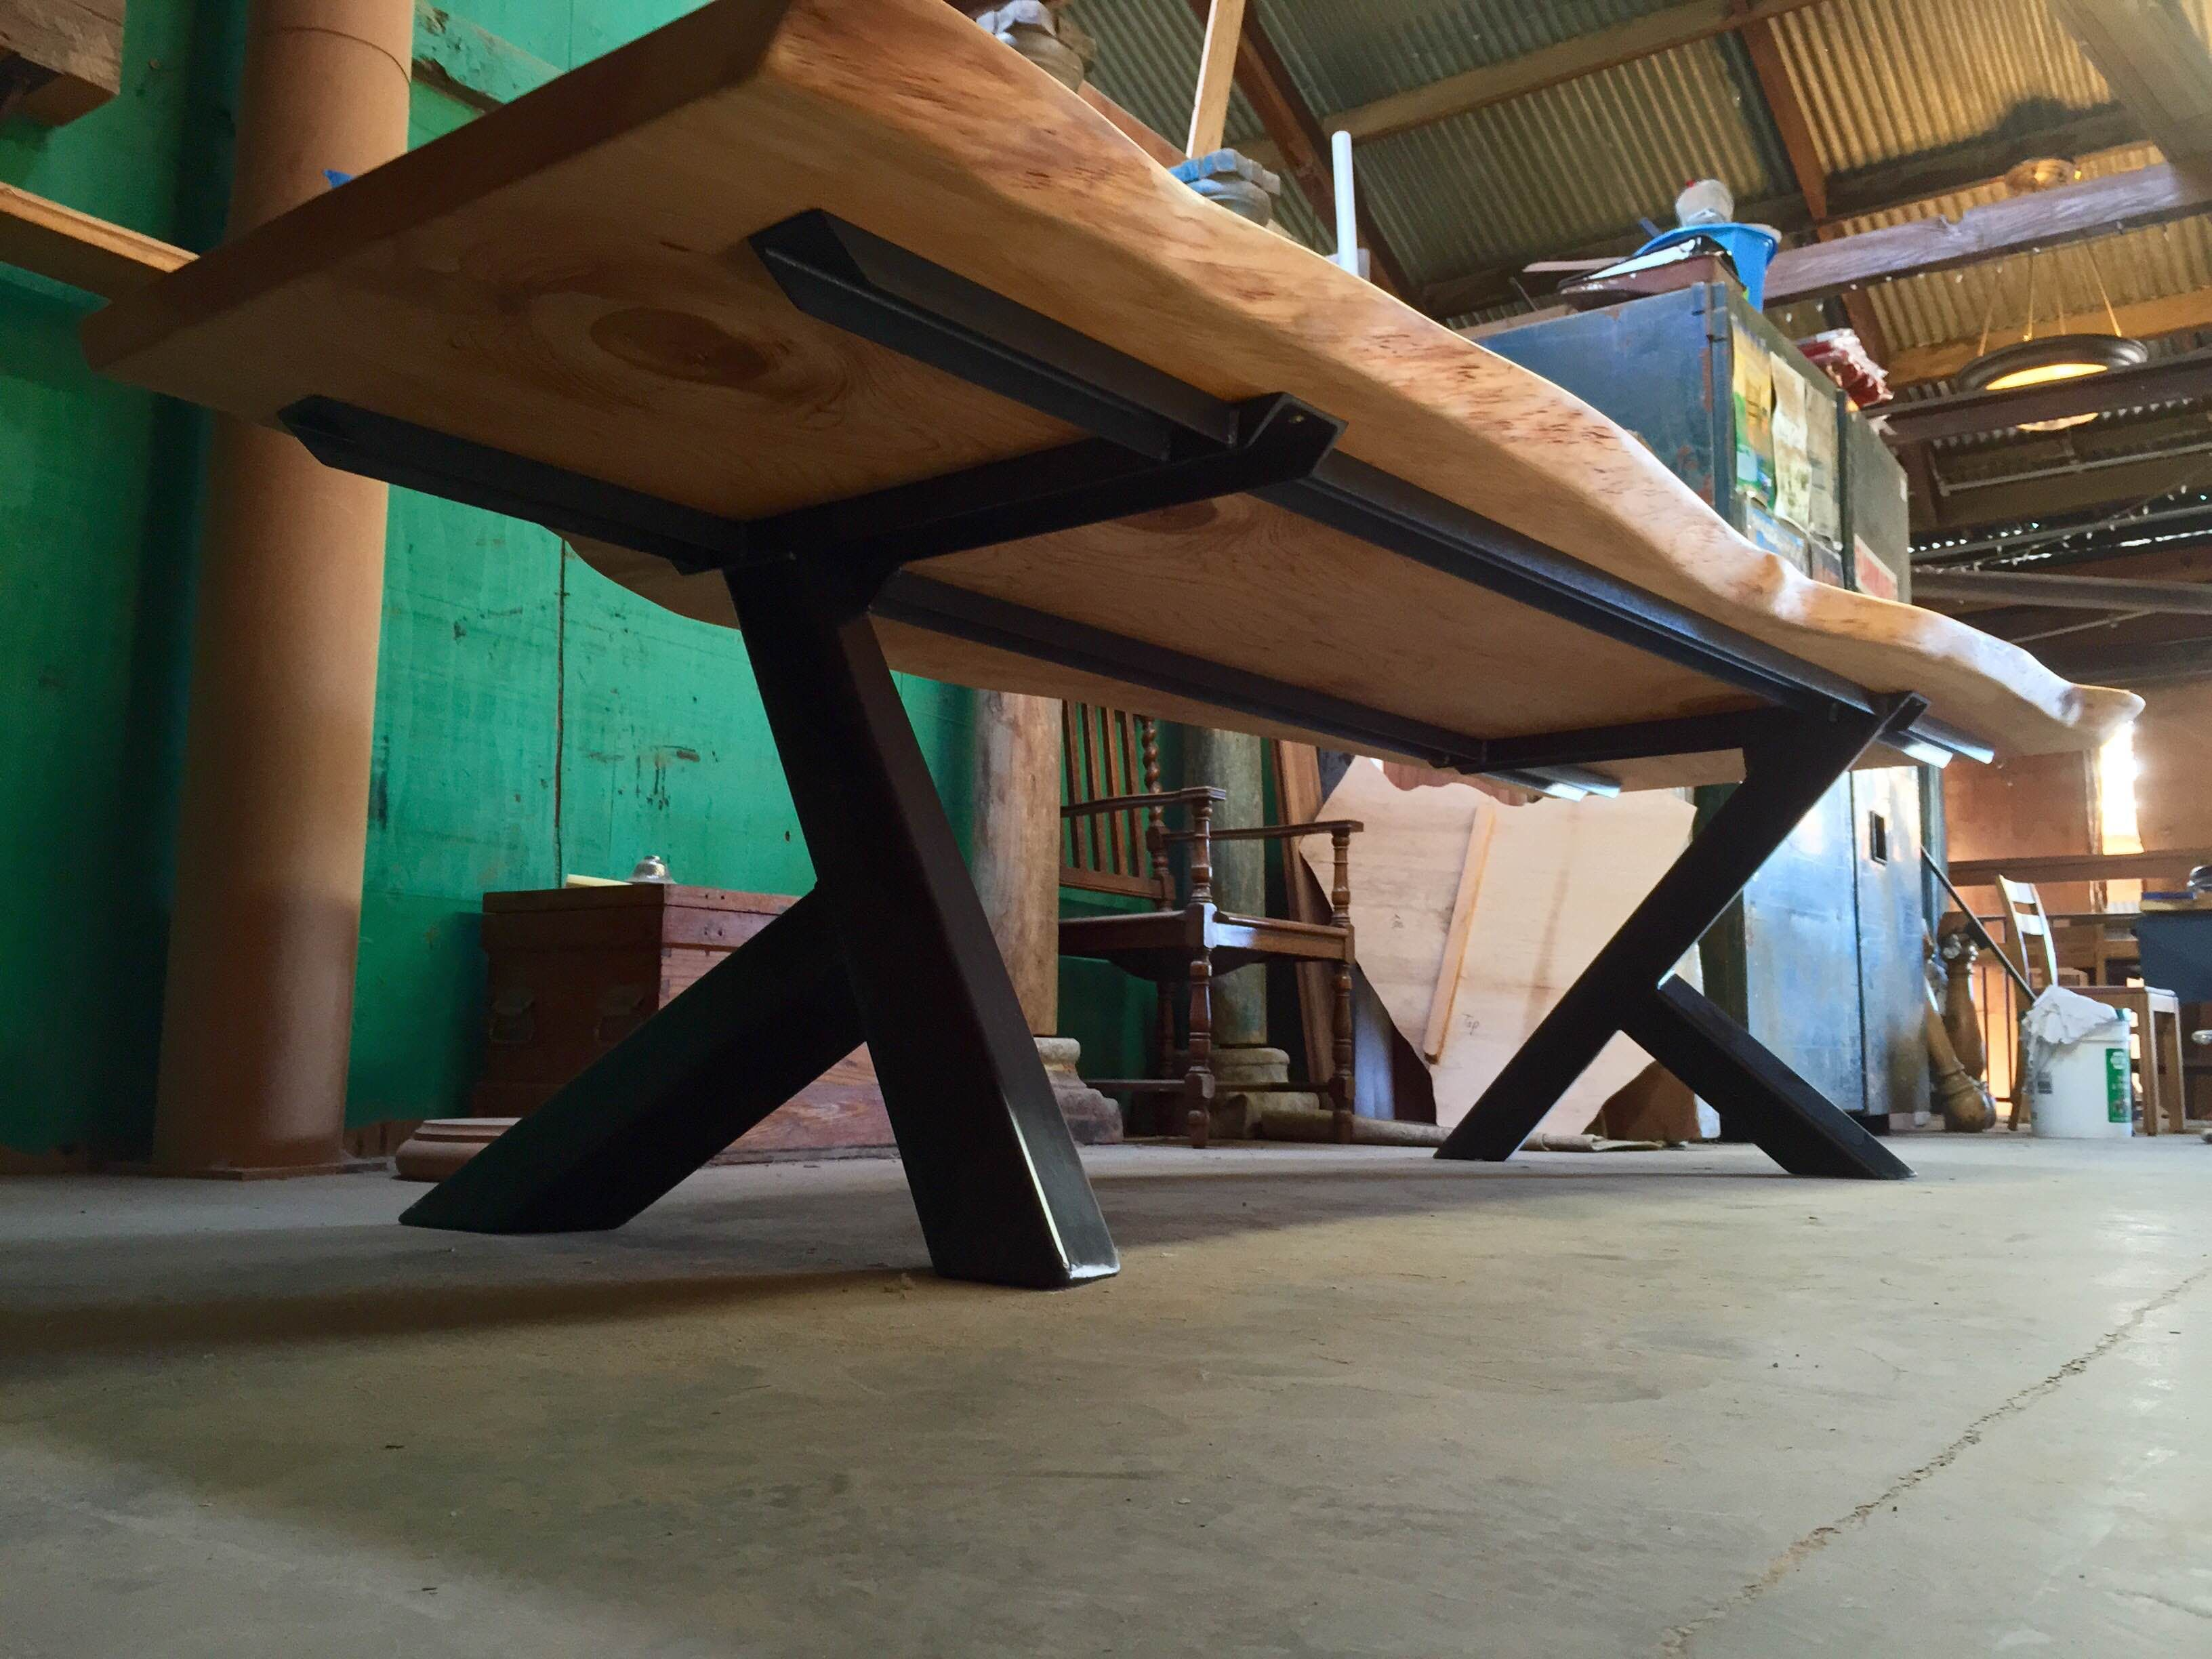 Underside Of The Slab Table With Complete View Of Unique Steel